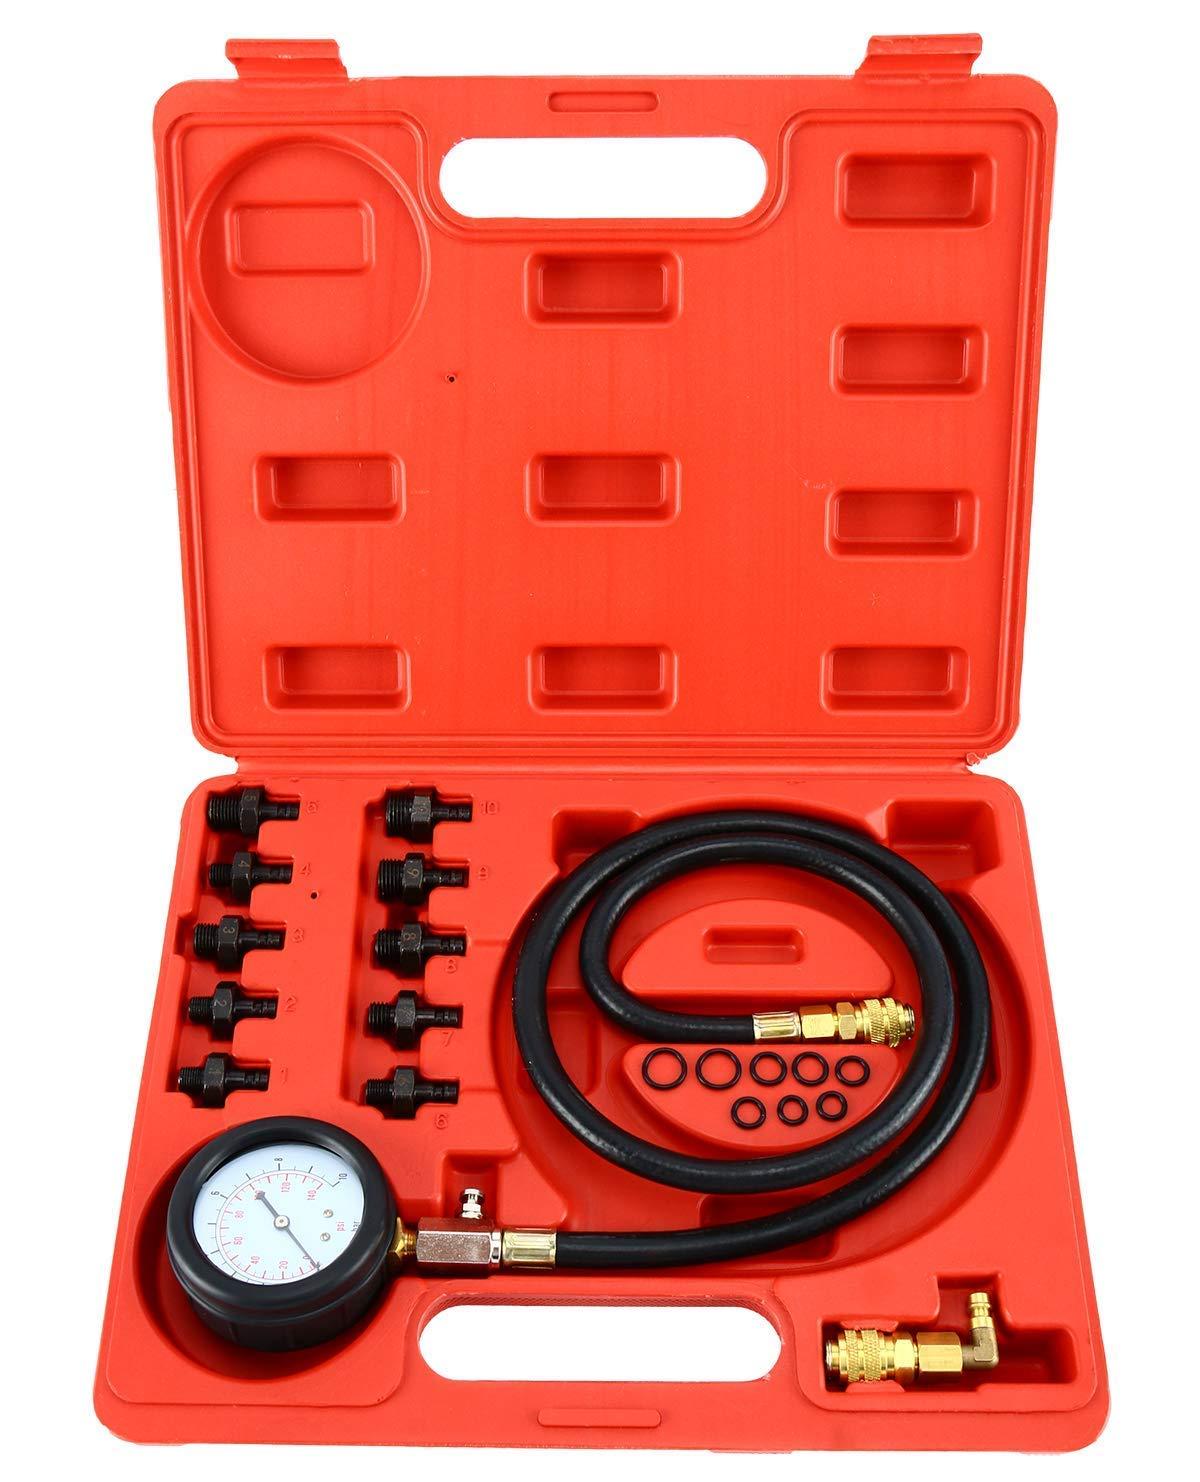 ATP 0-140 PSI Engine Oil Pressure Test Kit Tester Low Oil Warning Devices Gauge